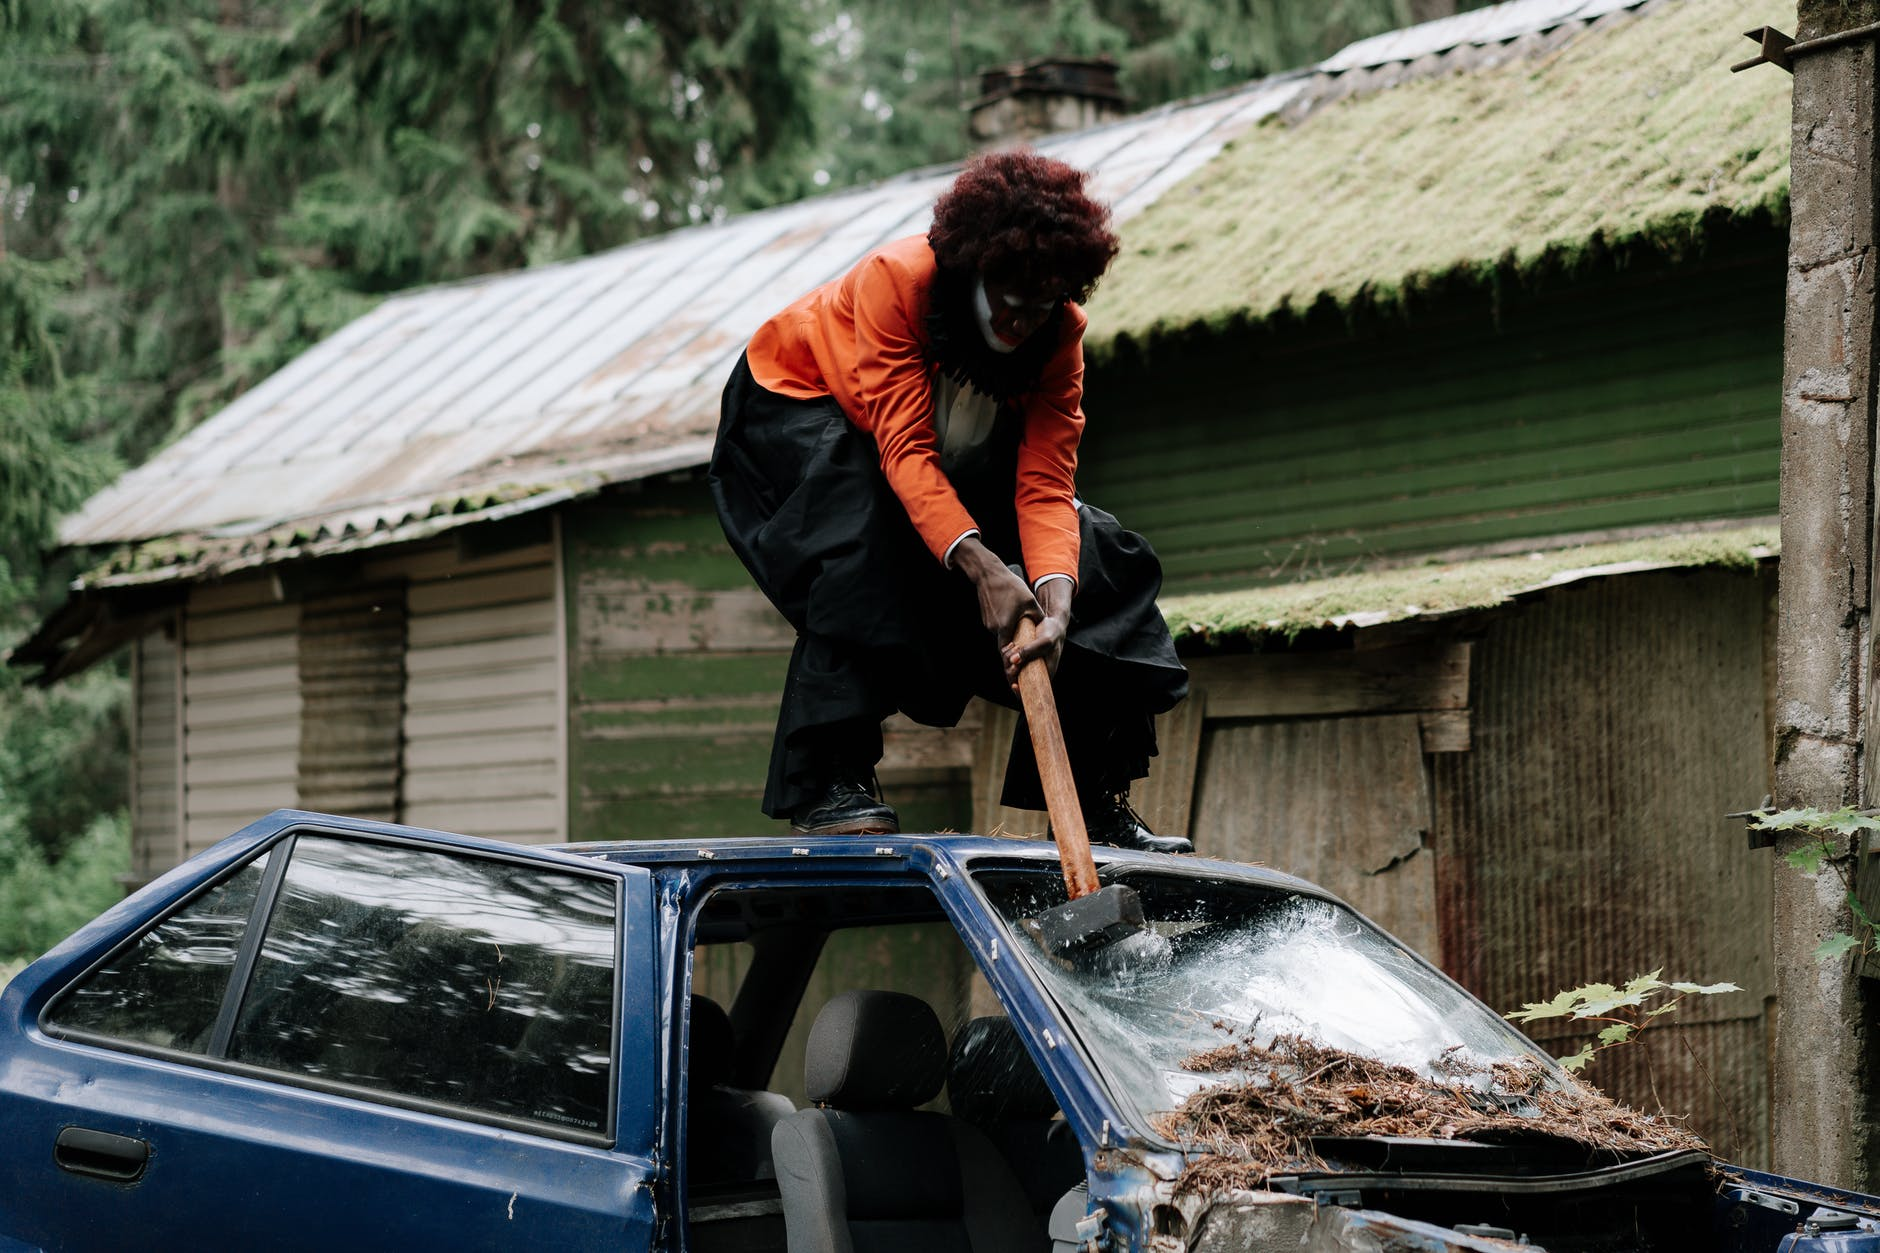 A woman smashing a car's windshield with a sledgehammer.